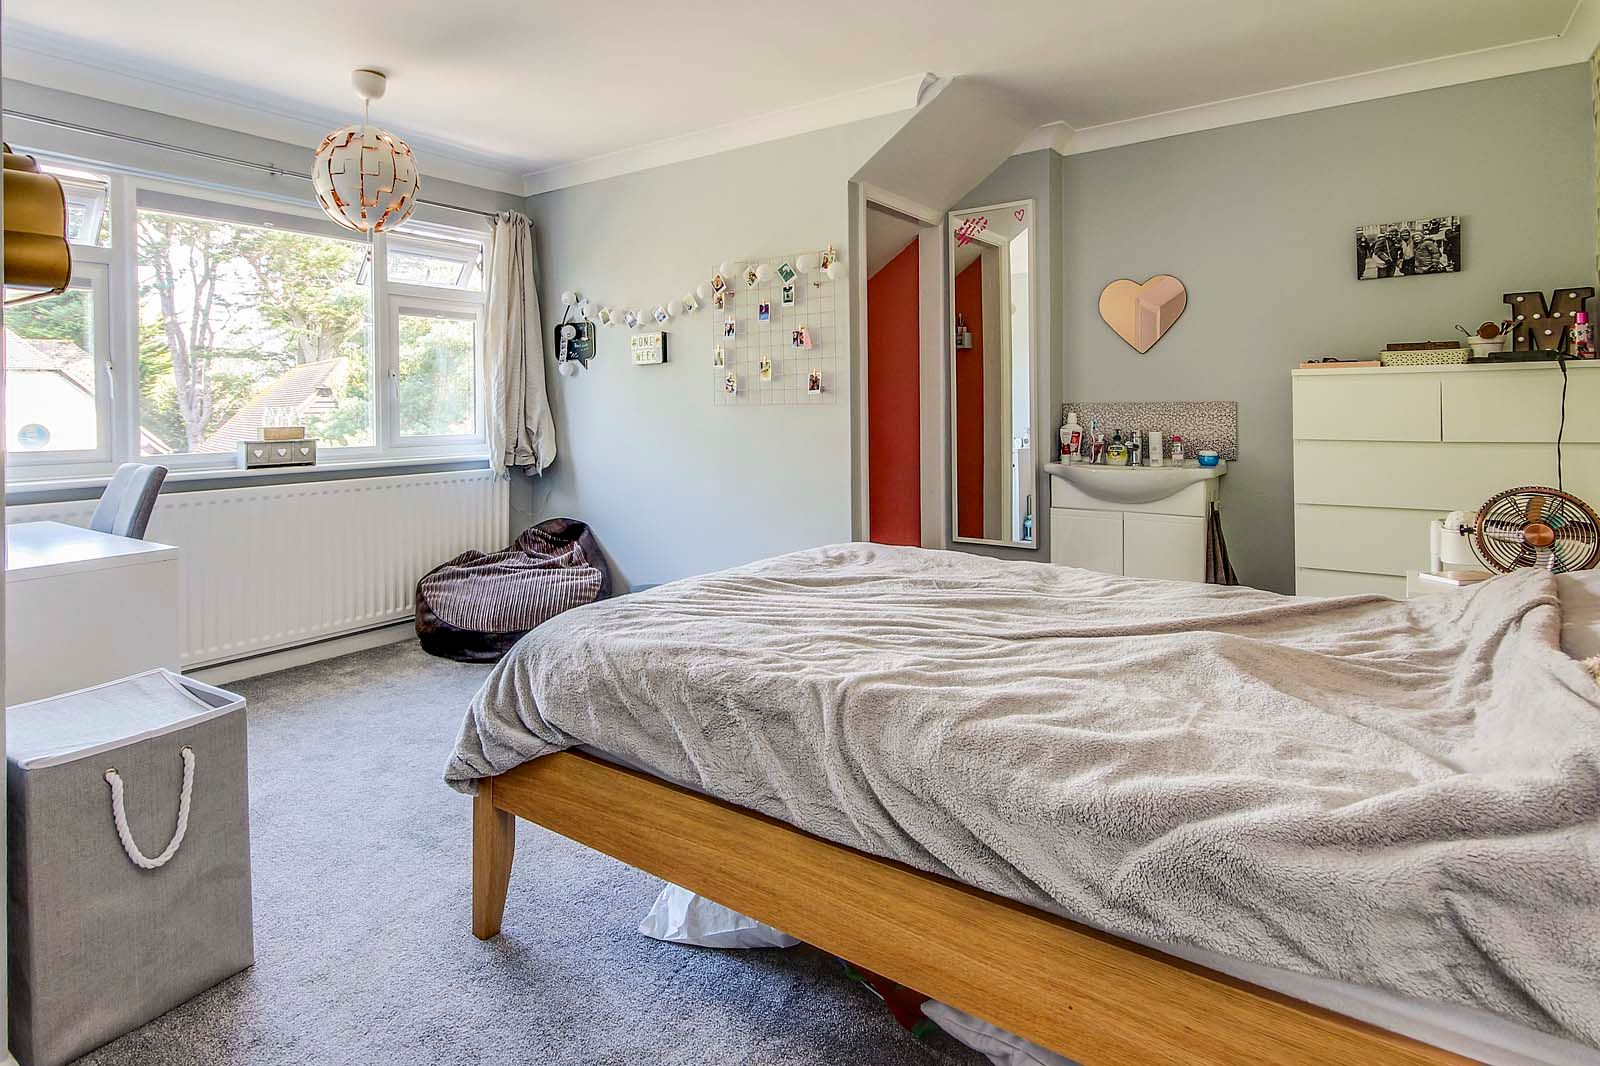 4 bed House for sale in Rustington - Bedroom (Property Image 11)